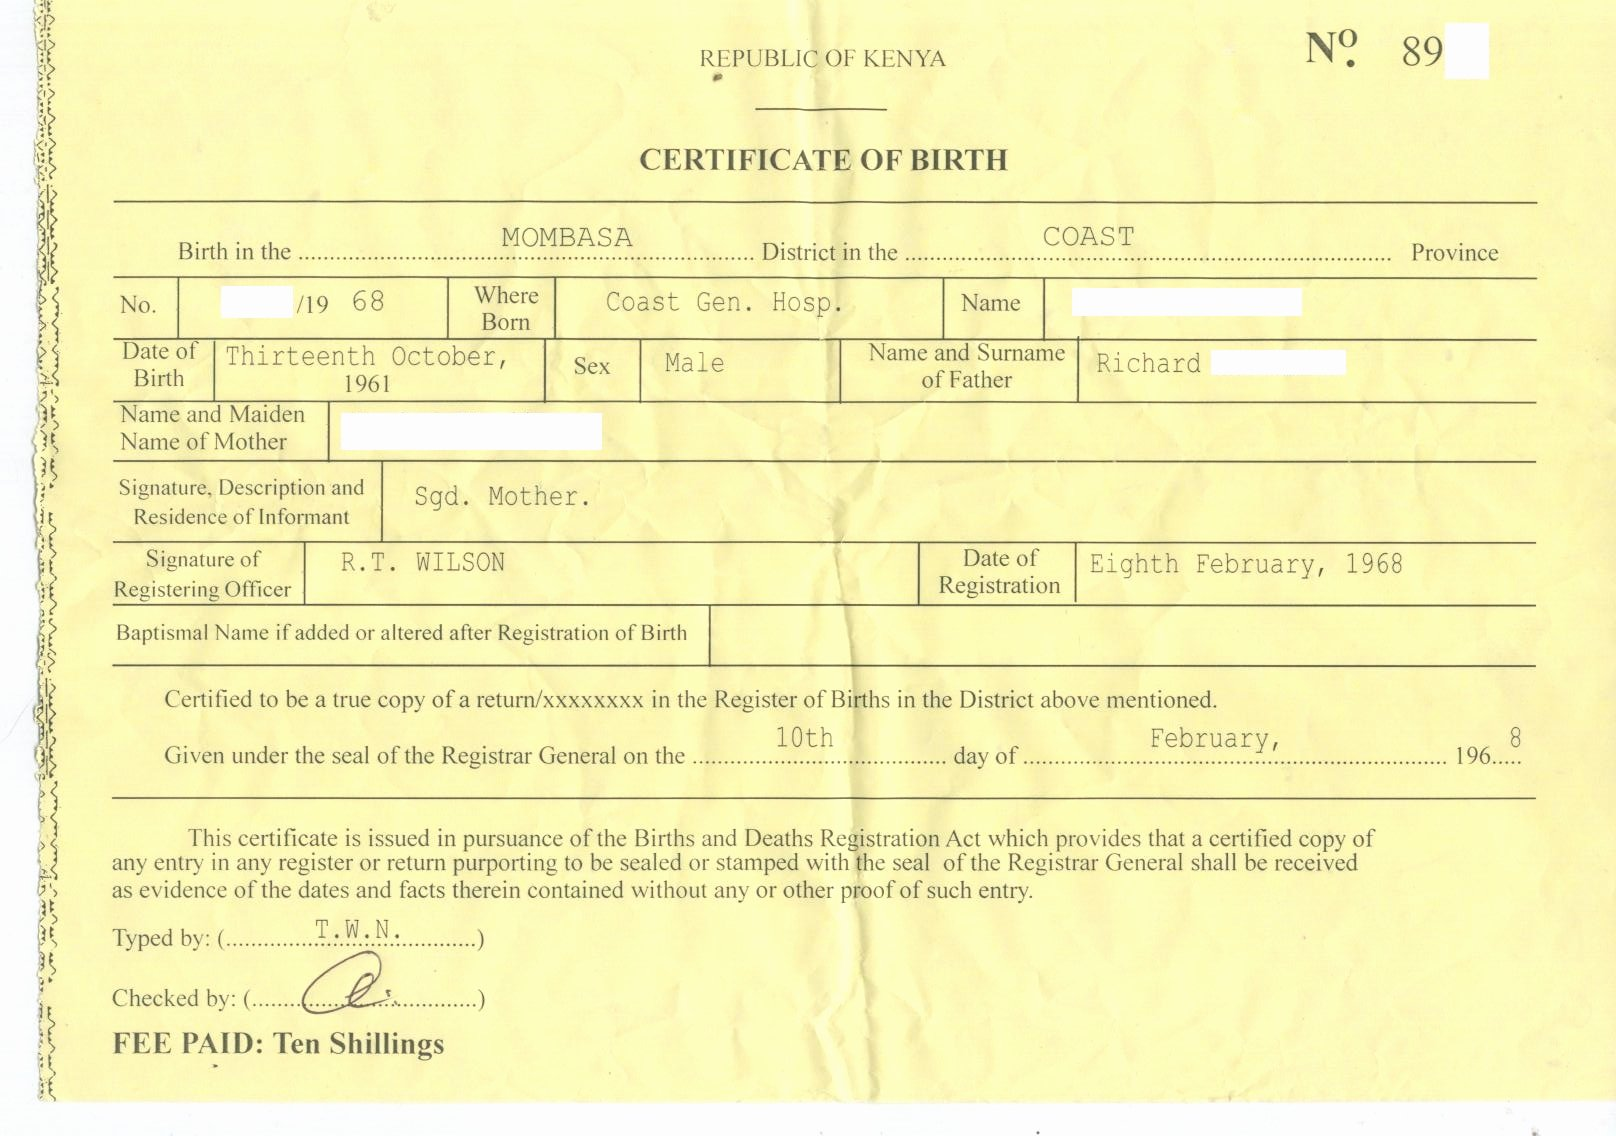 Fake Birth Certificate Template Lovely Dr Conspiracy's First Fake Kenyan Birth Certificate